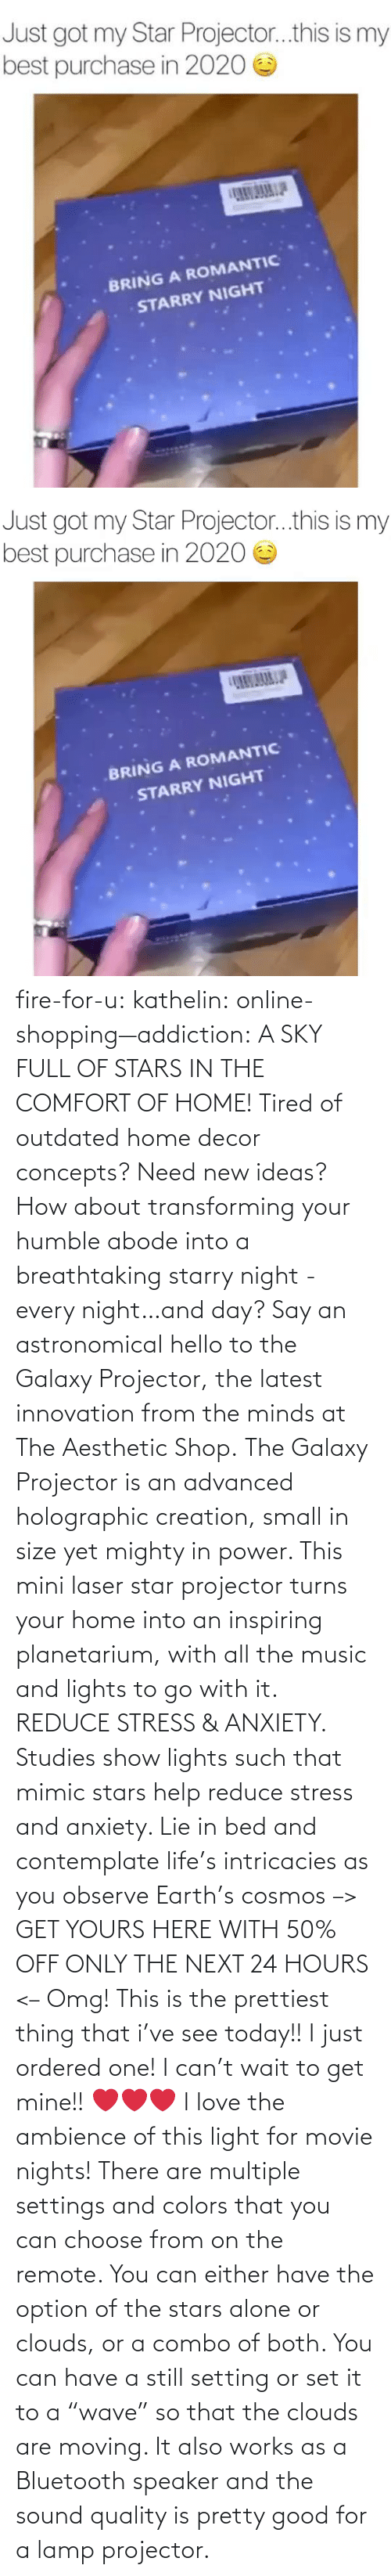 "yet: fire-for-u:  kathelin: online-shopping—addiction:  A SKY FULL OF STARS IN THE COMFORT OF HOME! Tired of outdated home decor concepts? Need new ideas? How about transforming your humble abode into a breathtaking starry night - every night…and day? Say an astronomical hello to the Galaxy Projector, the latest innovation from the minds at The Aesthetic Shop. The Galaxy Projector is an advanced holographic creation, small in size yet mighty in power. This mini laser star projector turns your home into an inspiring planetarium, with all the music and lights to go with it. REDUCE STRESS & ANXIETY. Studies show lights such that mimic stars help reduce stress and anxiety. Lie in bed and contemplate life's intricacies as you observe Earth's cosmos  –> GET YOURS HERE WITH 50% OFF ONLY THE NEXT 24 HOURS <–   Omg! This is the prettiest thing that i've see today!! I just ordered one! I can't wait to get mine!! ❤️️❤️️❤️️  I love the ambience of this light for movie nights! There are multiple settings and colors that you can choose from on the remote. You can either have the option of the stars alone or clouds, or a combo of both. You can have a still setting or set it to a ""wave"" so that the clouds are moving. It also works as a Bluetooth speaker and the sound quality is pretty good for a lamp projector."